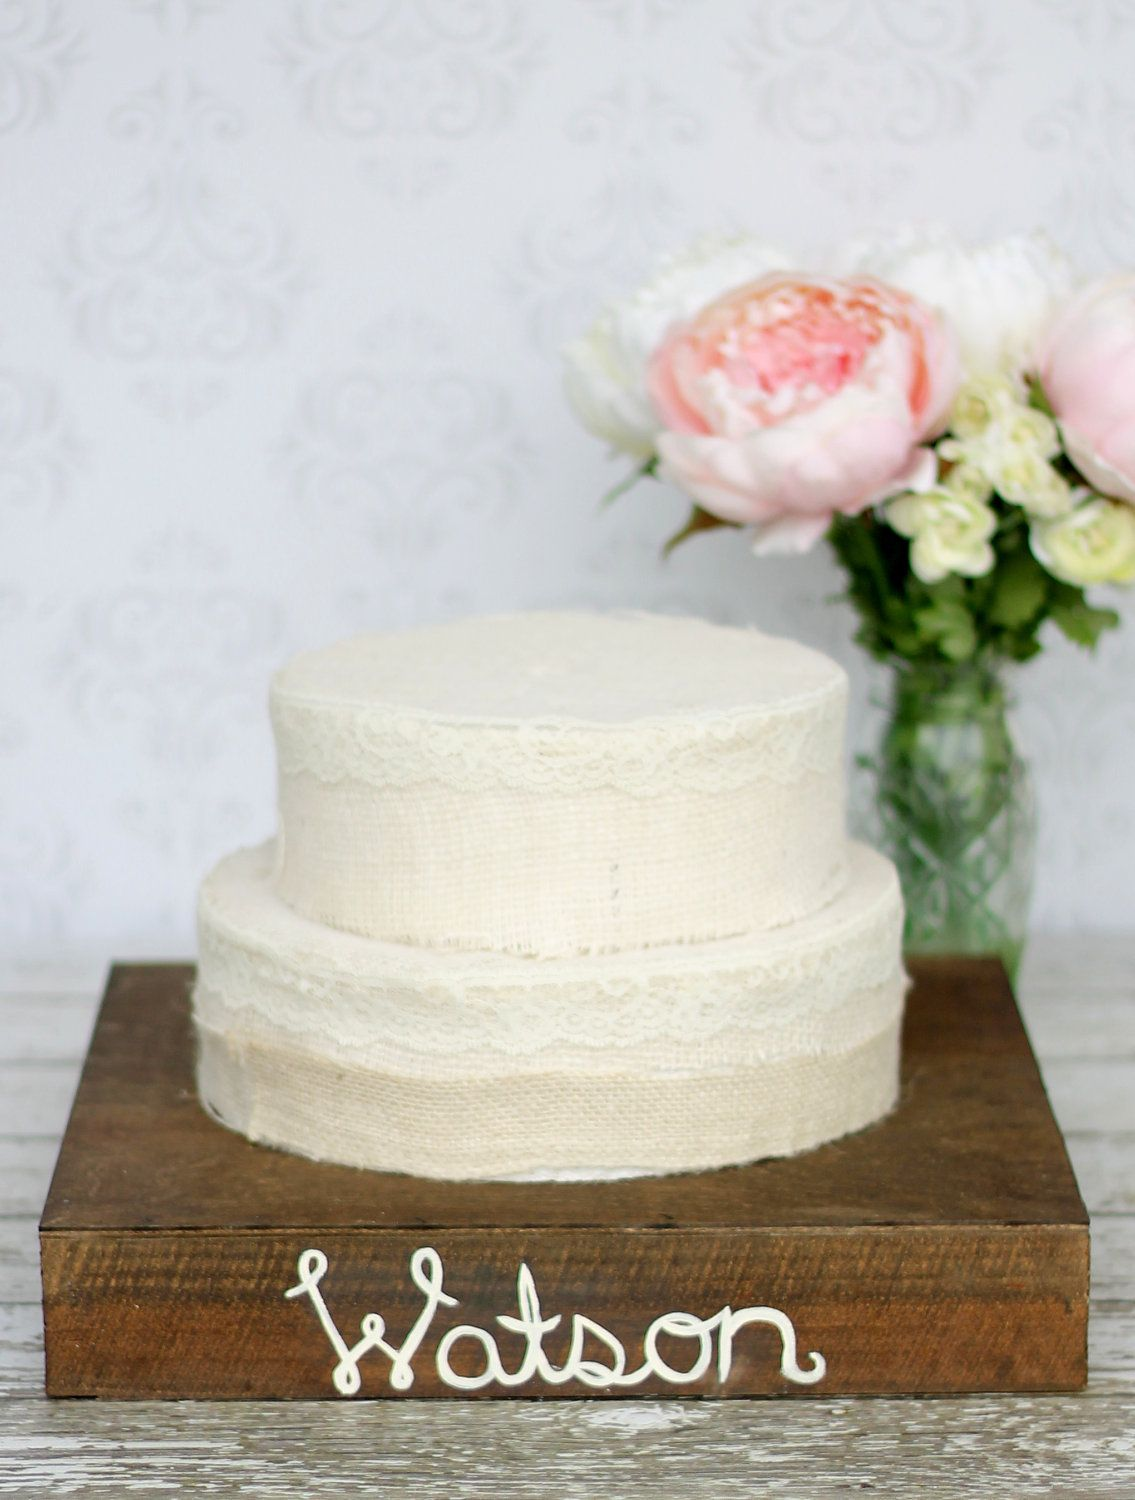 Personalized cake stand rustic wedding decor item p